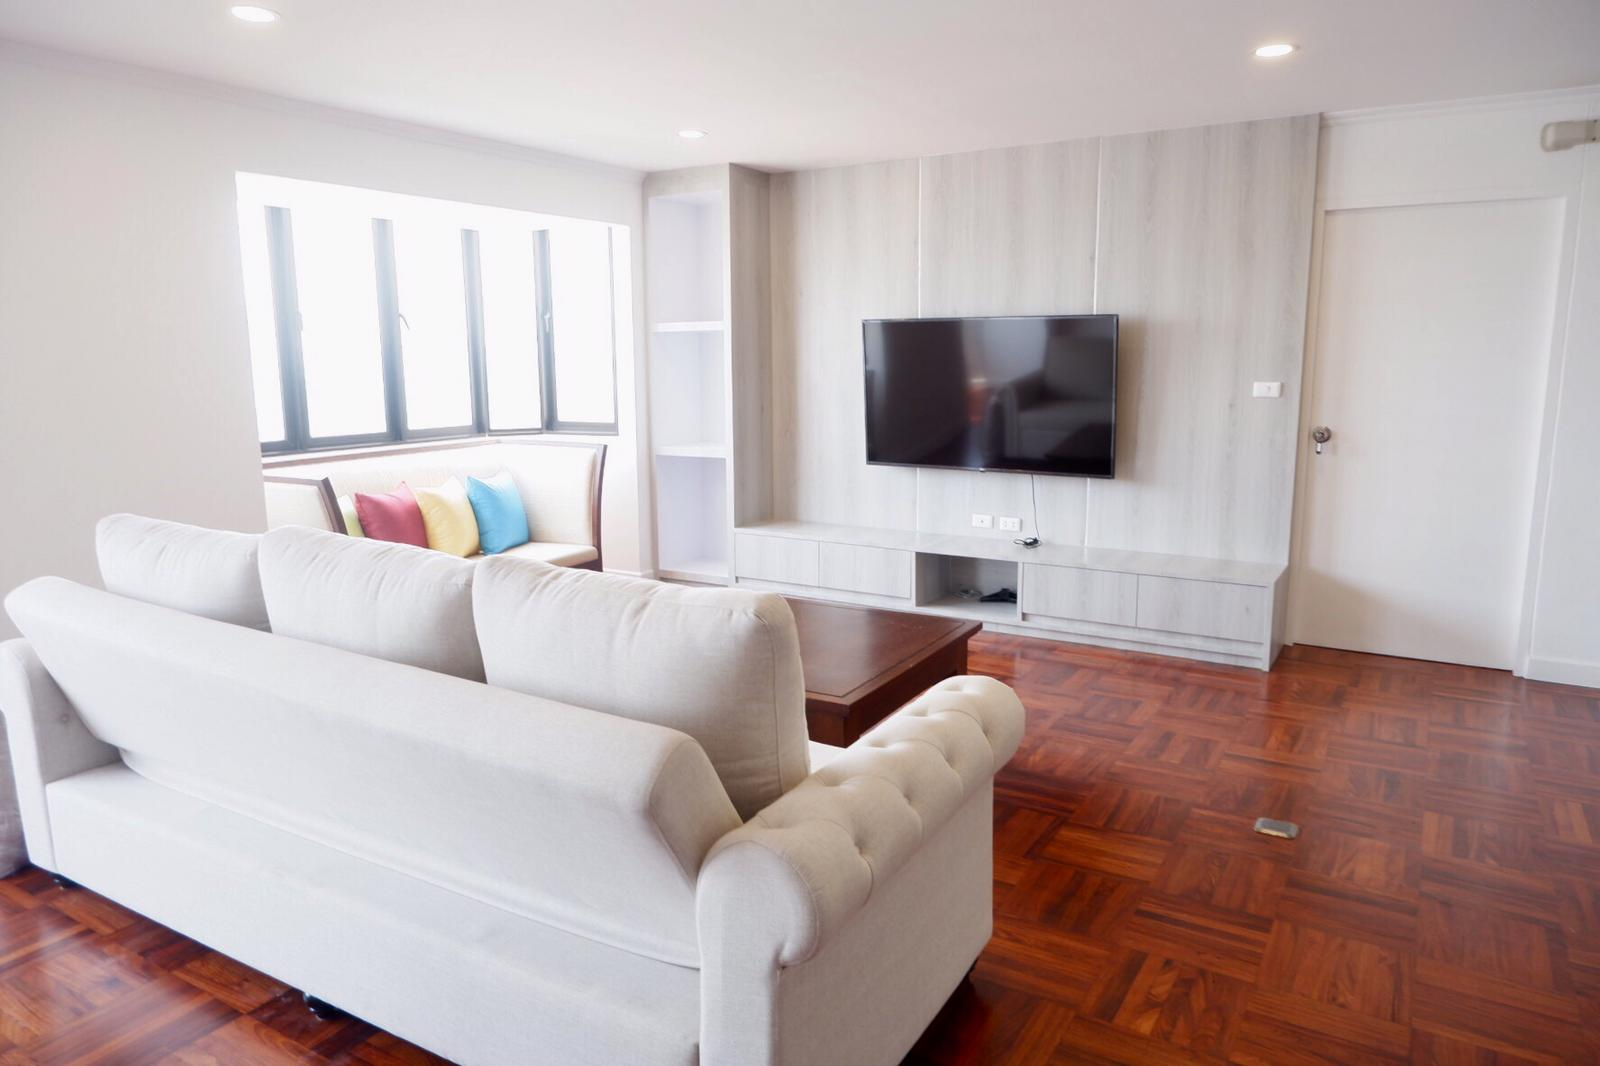 2 Bedroom | 132sqm | Full Furnish | Sukhumvit Nana